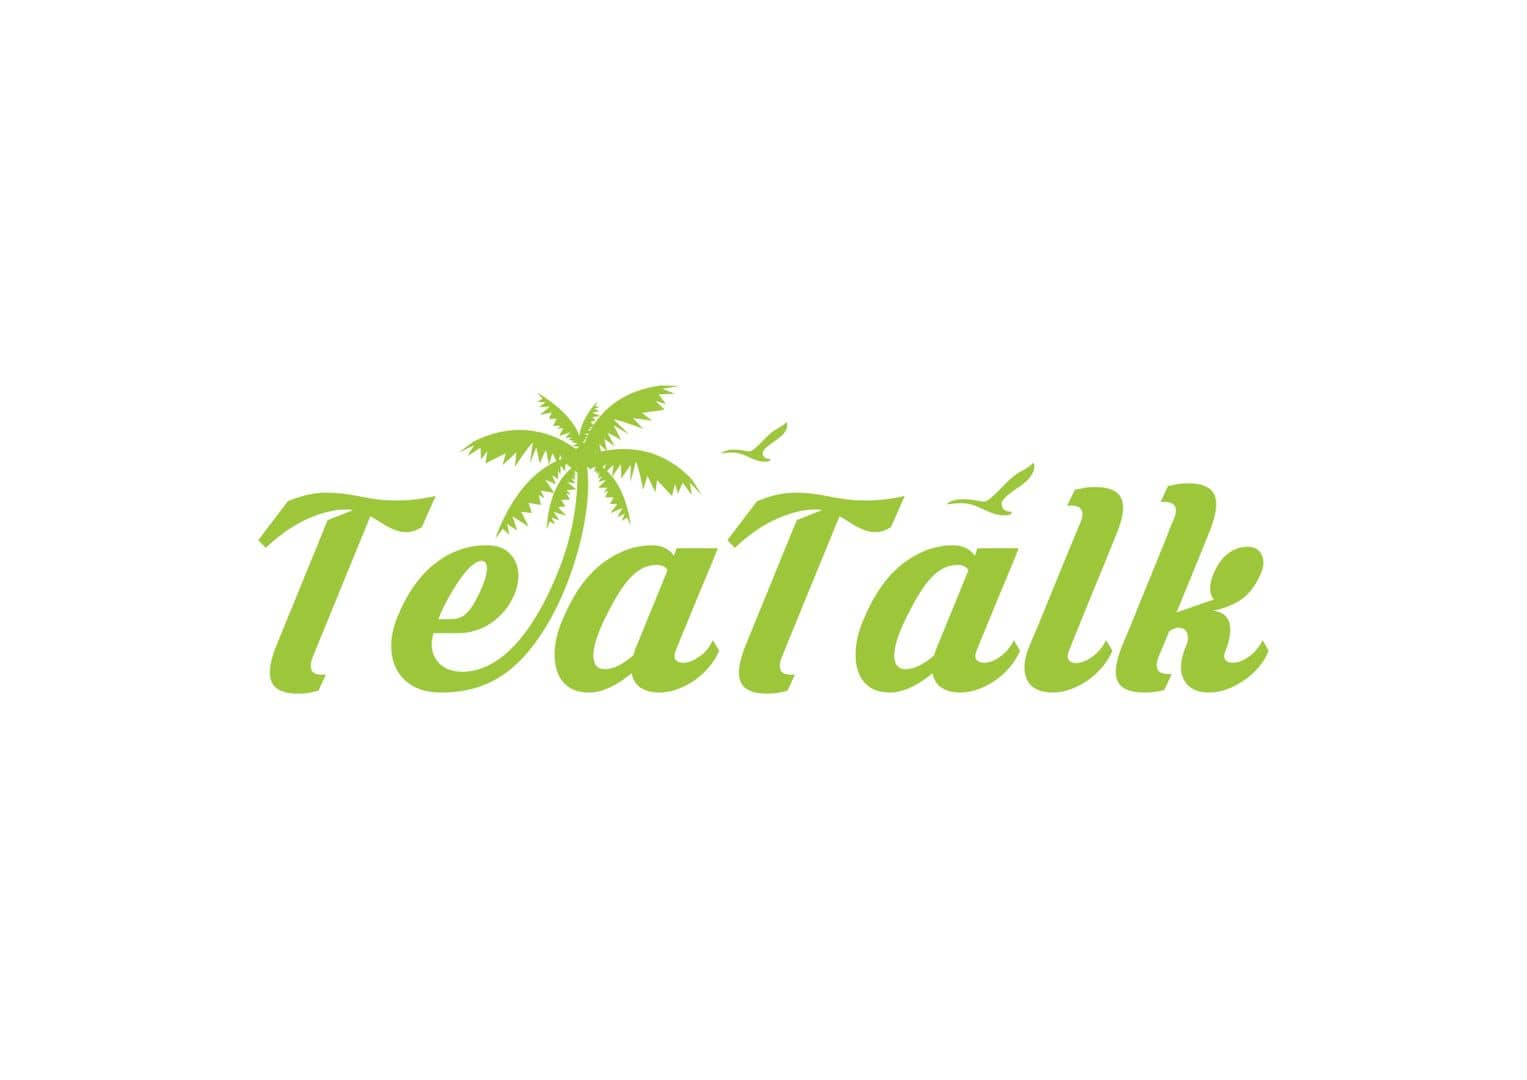 Tea Talk image